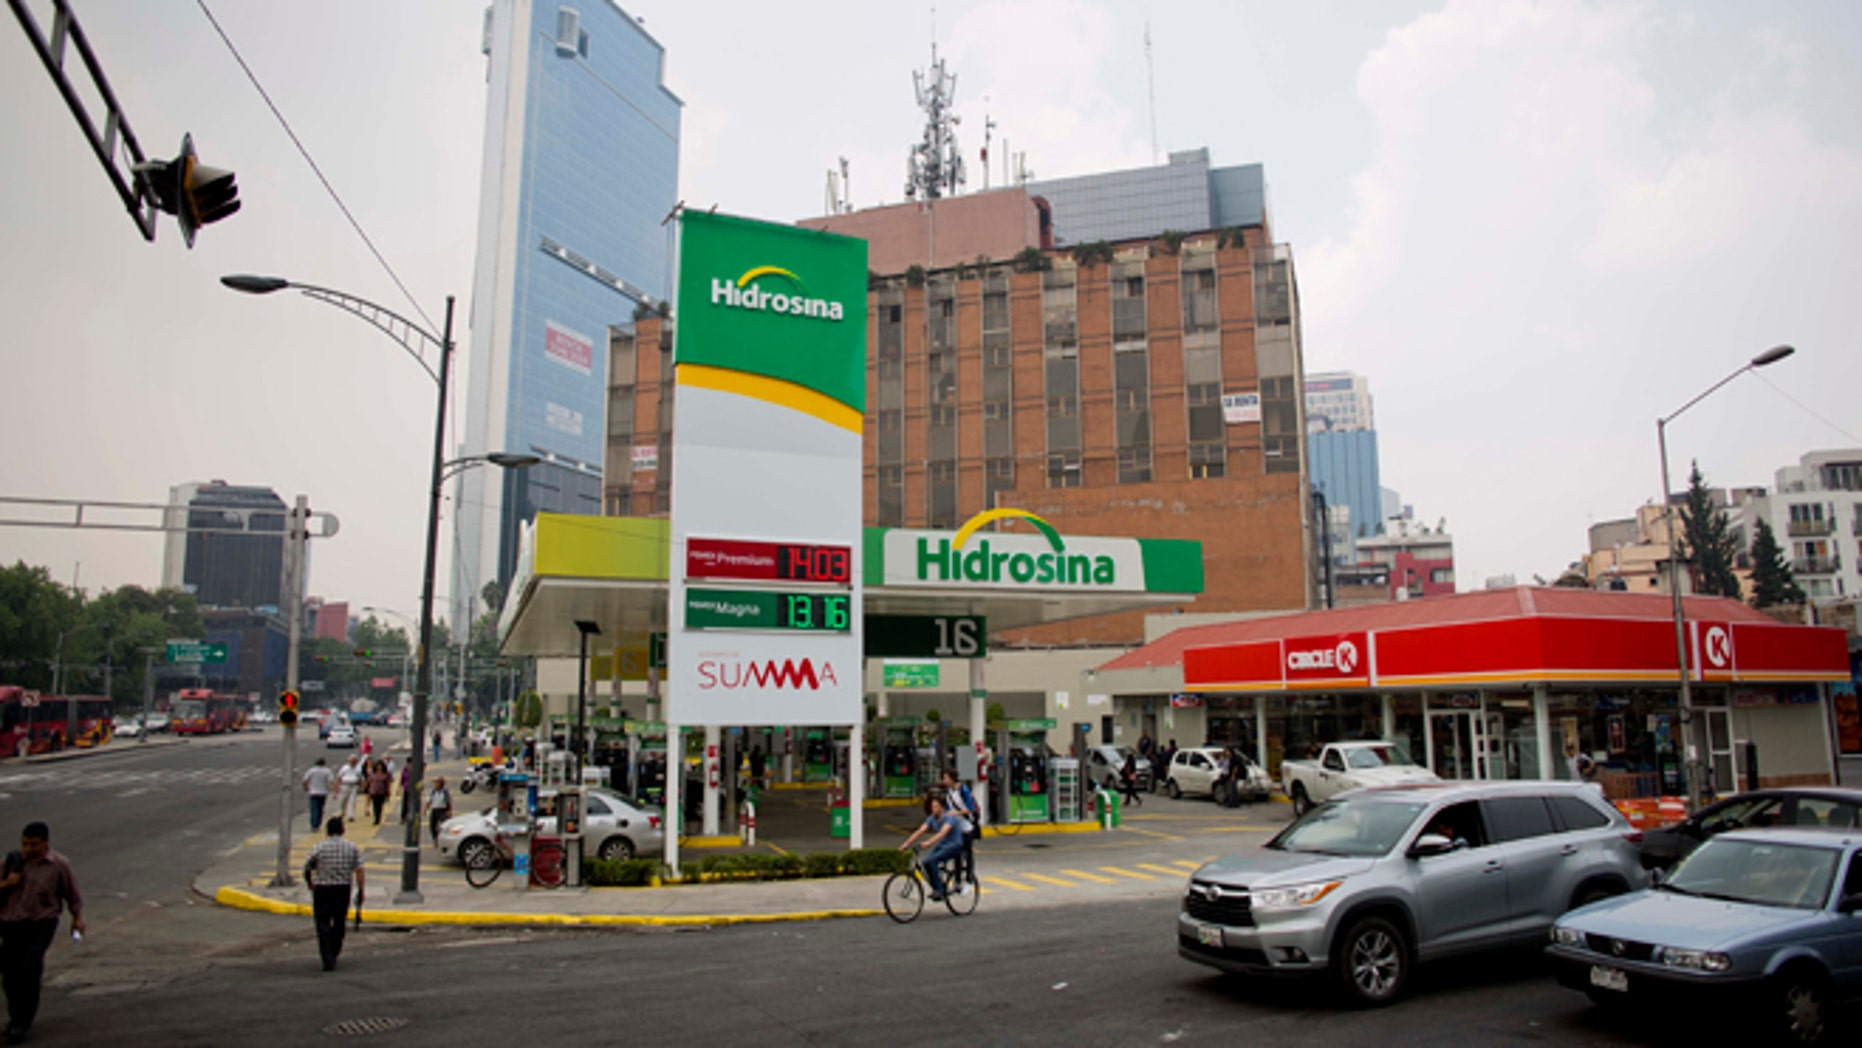 Hidrosina opened a re-branded Pemex gas station on one of the main avenues in Mexico City, Tuesday, June 7, 2016.  Mexico's ubiquitous Pemex gas stations now have competition along the country's highways and city streets for the first time in nearly eight decades. Two companies have collectively opened three gas stations under their own brands, breaking one of the state-owned petroleum company's last monopolies. Opening the retail sector to competition was part of energy reforms passed in 2014. (AP Photo/Eduardo Verdugo)